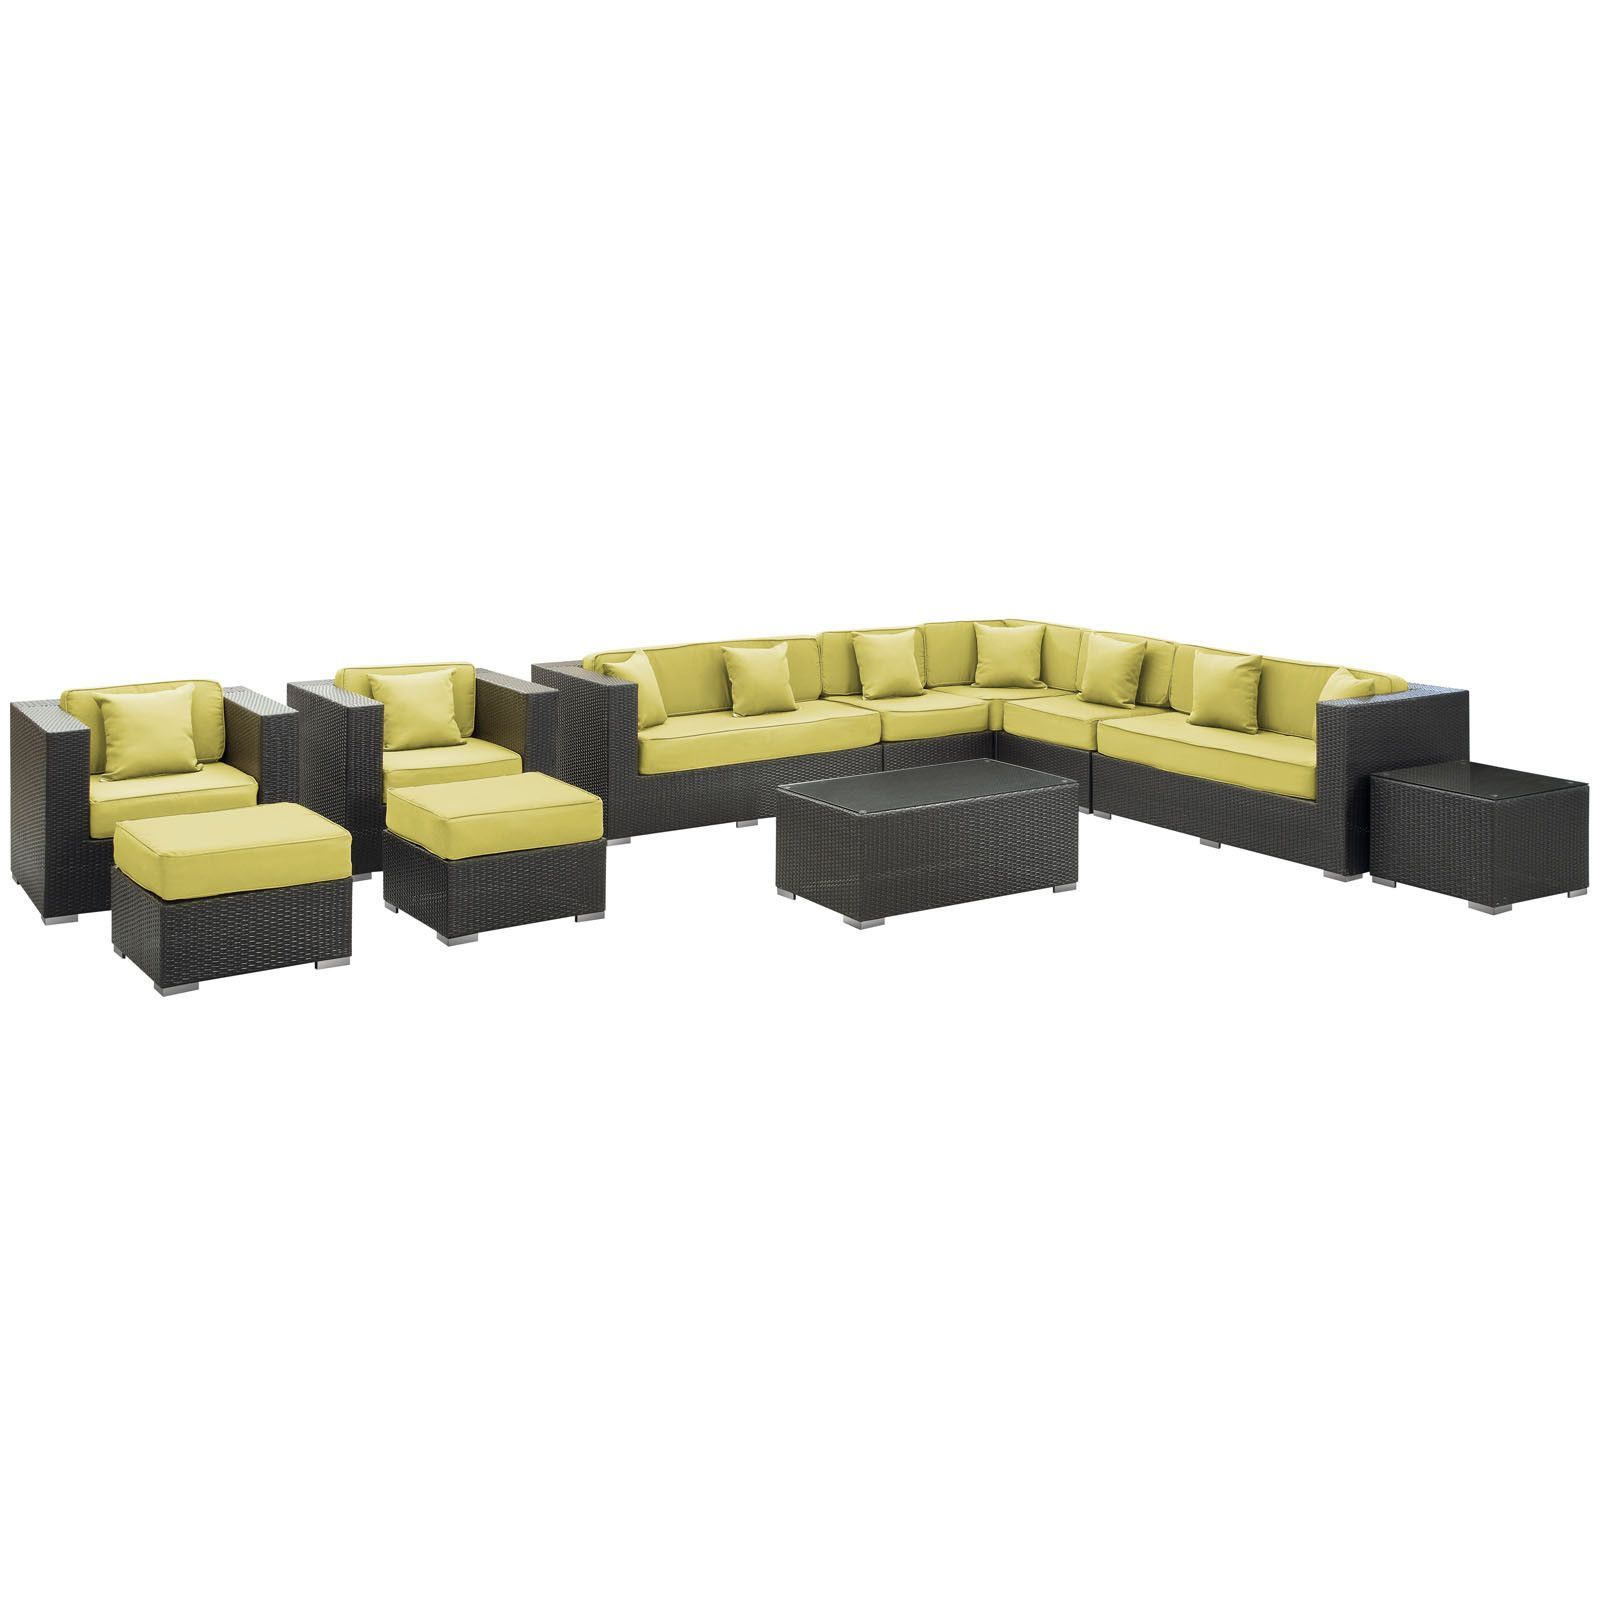 Cohesion 11 Piece Outdoor Patio Sectional Set